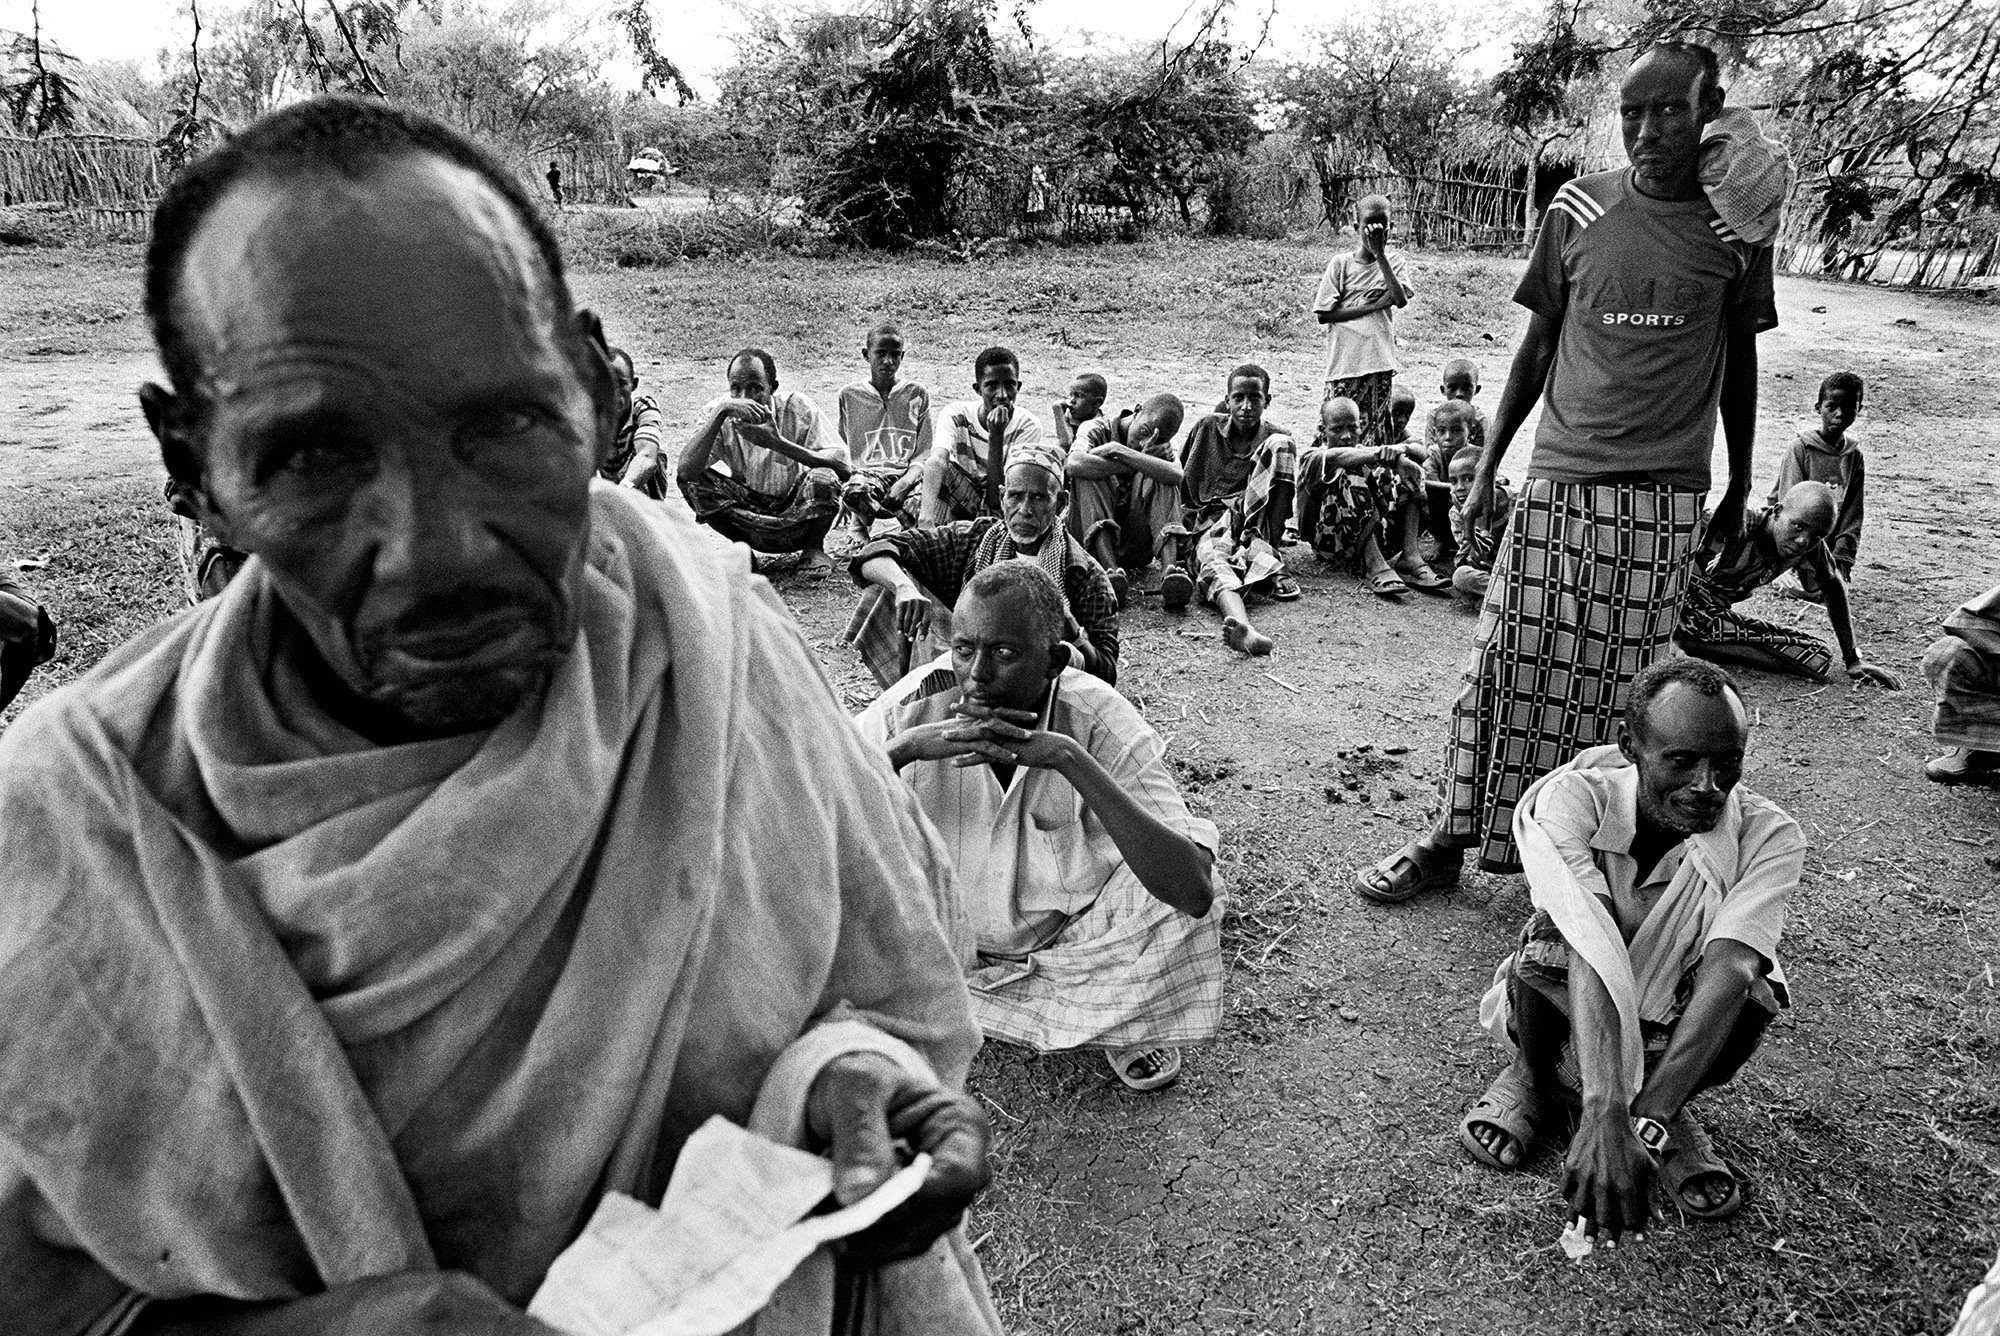 In the late 1980s and early 1990s, the Galjeel were stripped of their Kenyan identity documents and evicted from their land. All forms of identification were taken fro them and most became stateless.